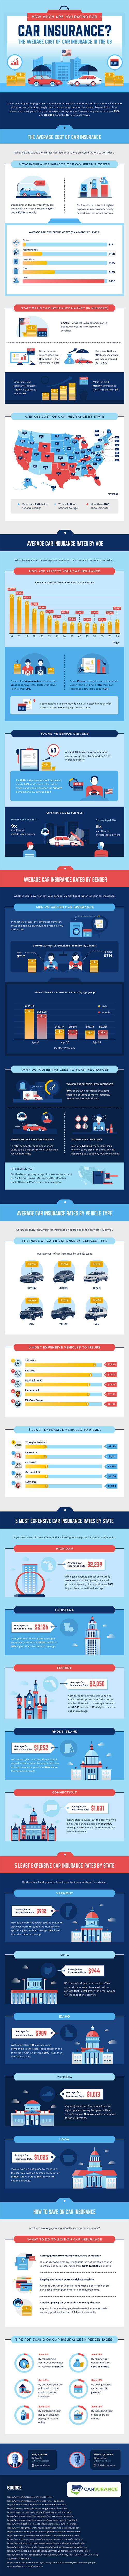 what is the average cost of car insurance